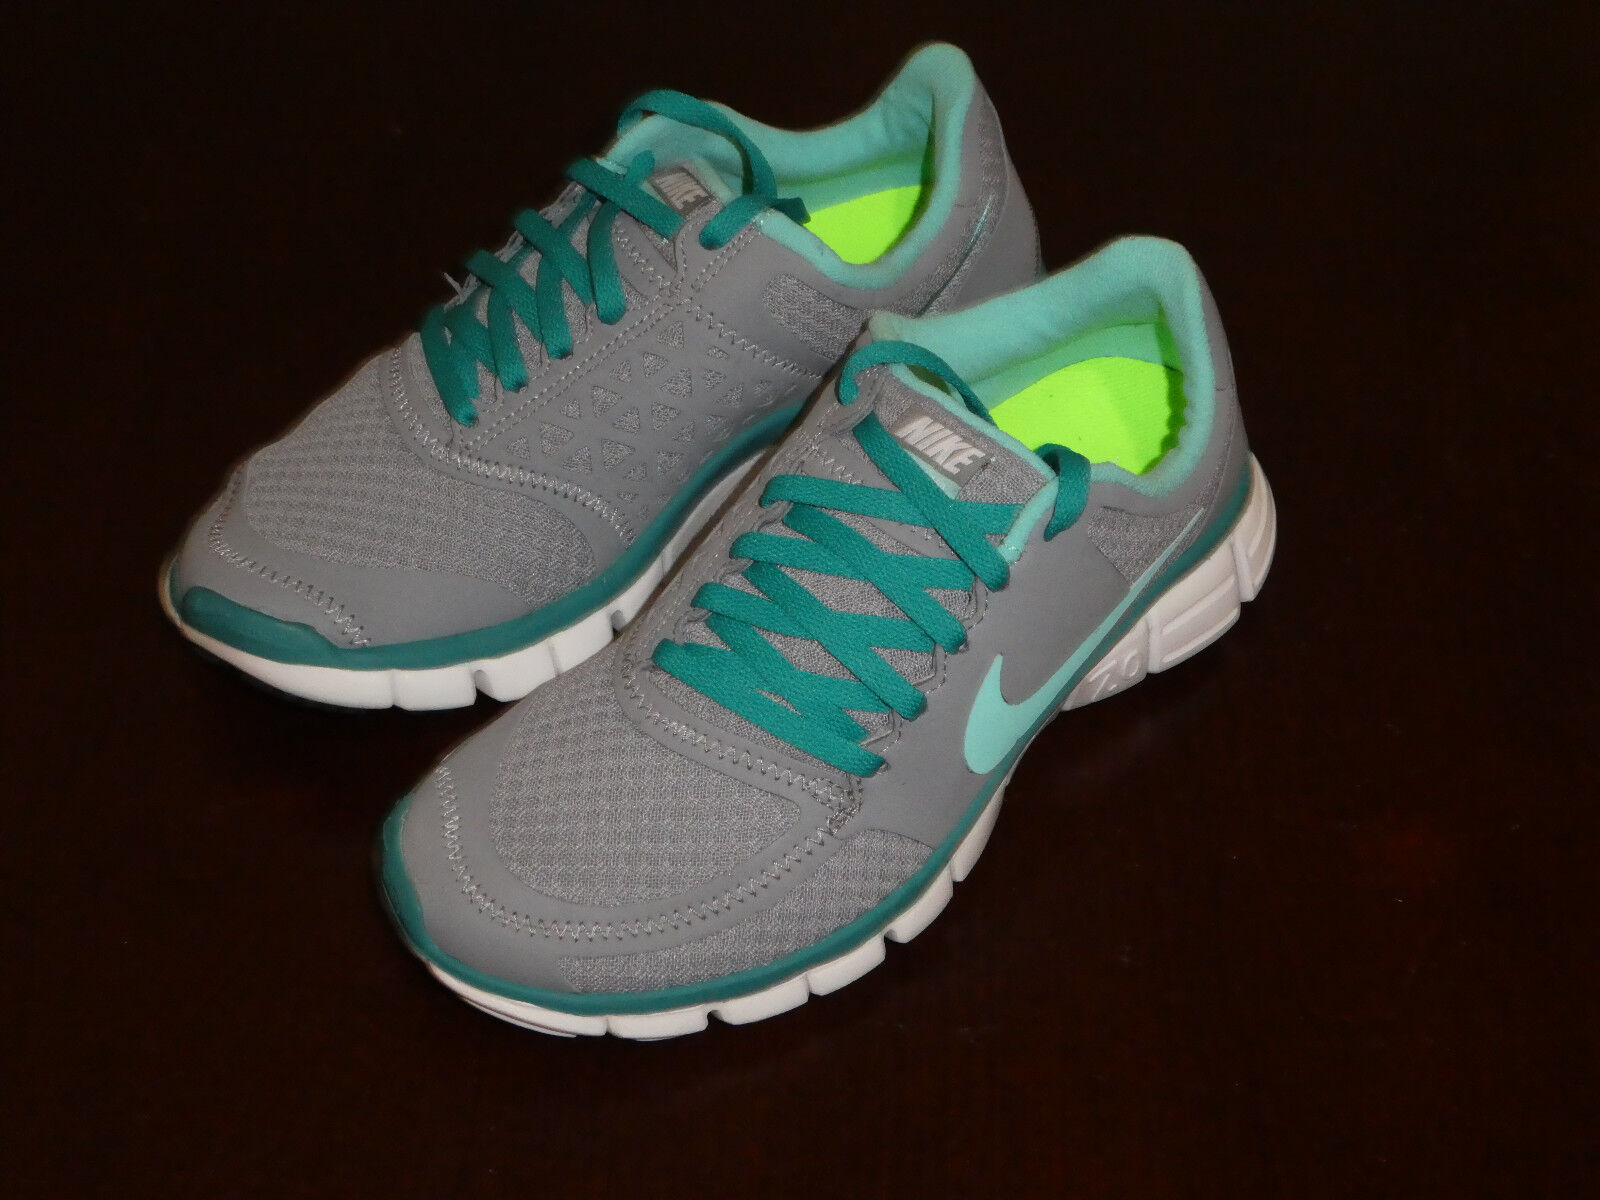 Nike womens Free new 7.0 V2 size 5.5 new Free 396044 044 shoes sneakes e92720